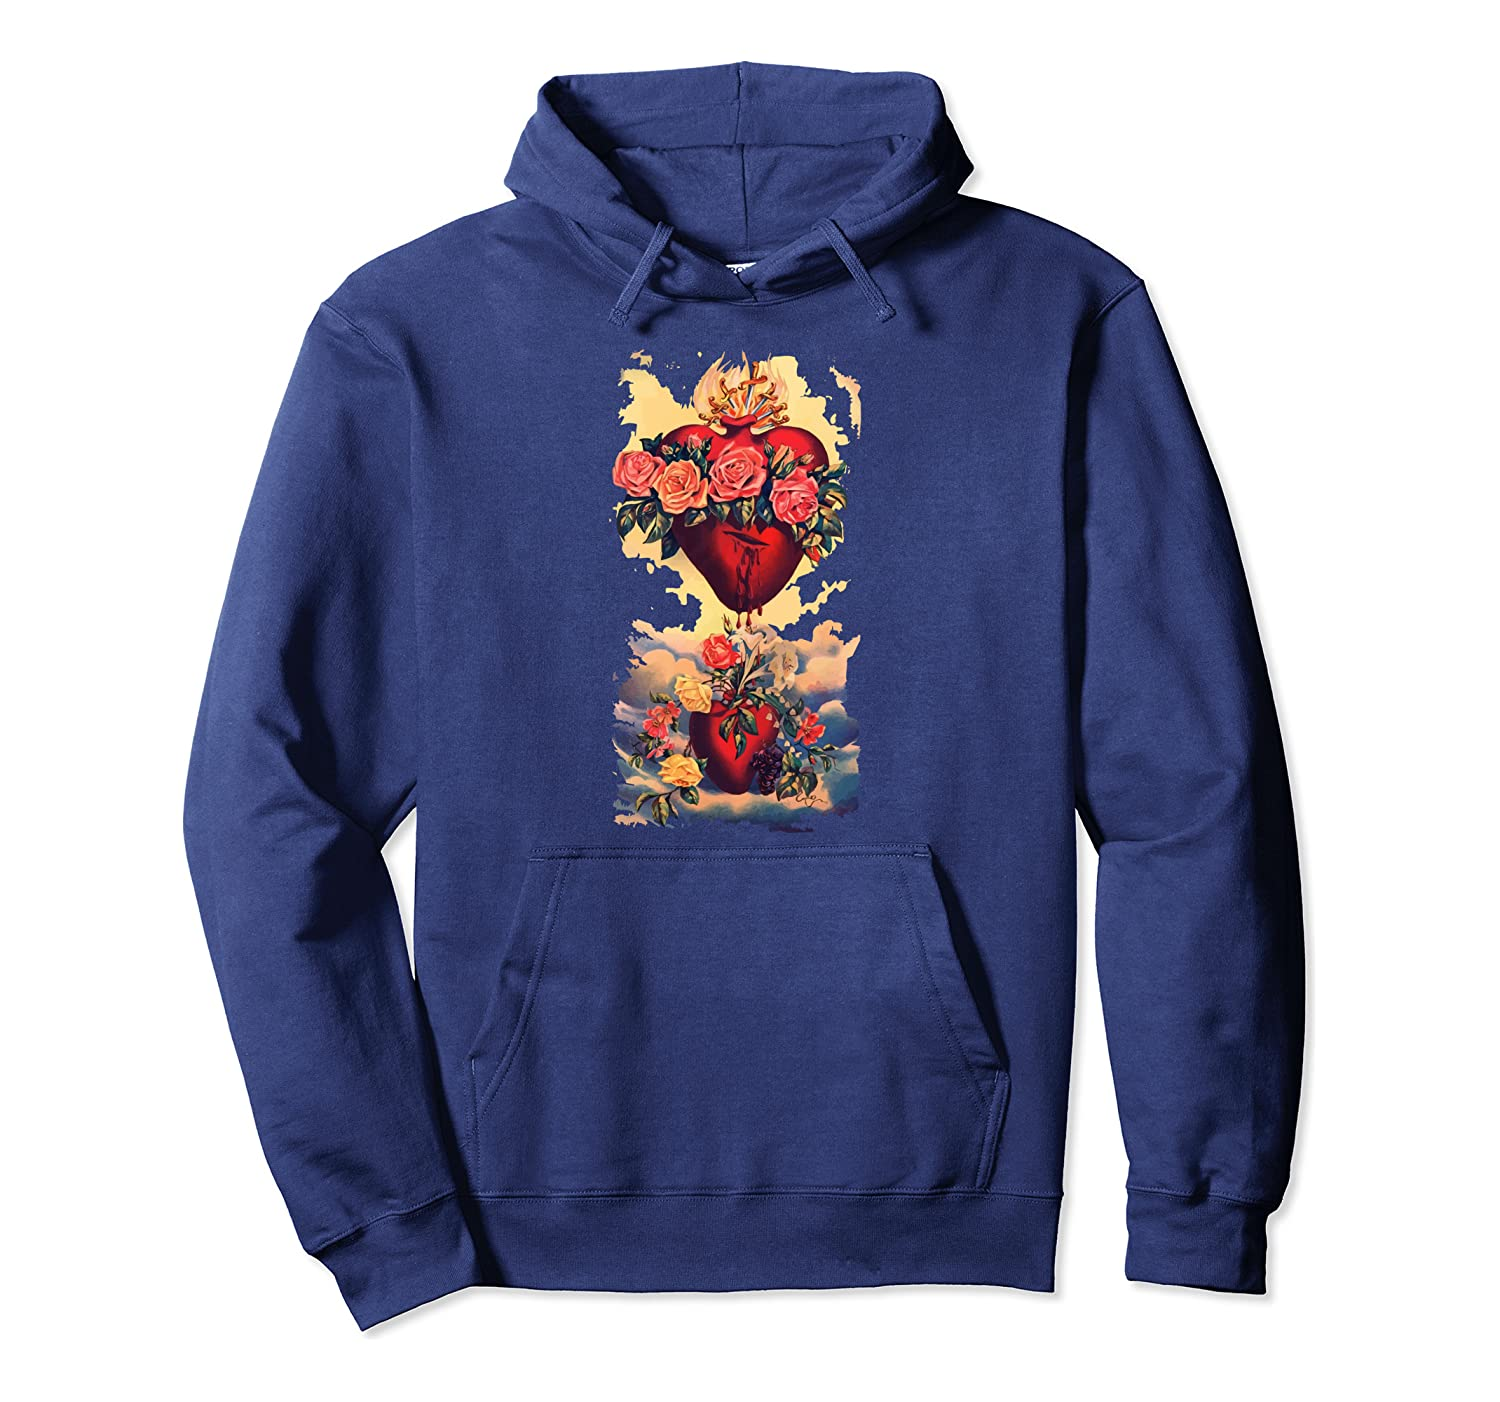 Immaculate Heart of Mary Vintage Blessed Catholic Girl Gift Pullover Hoodie